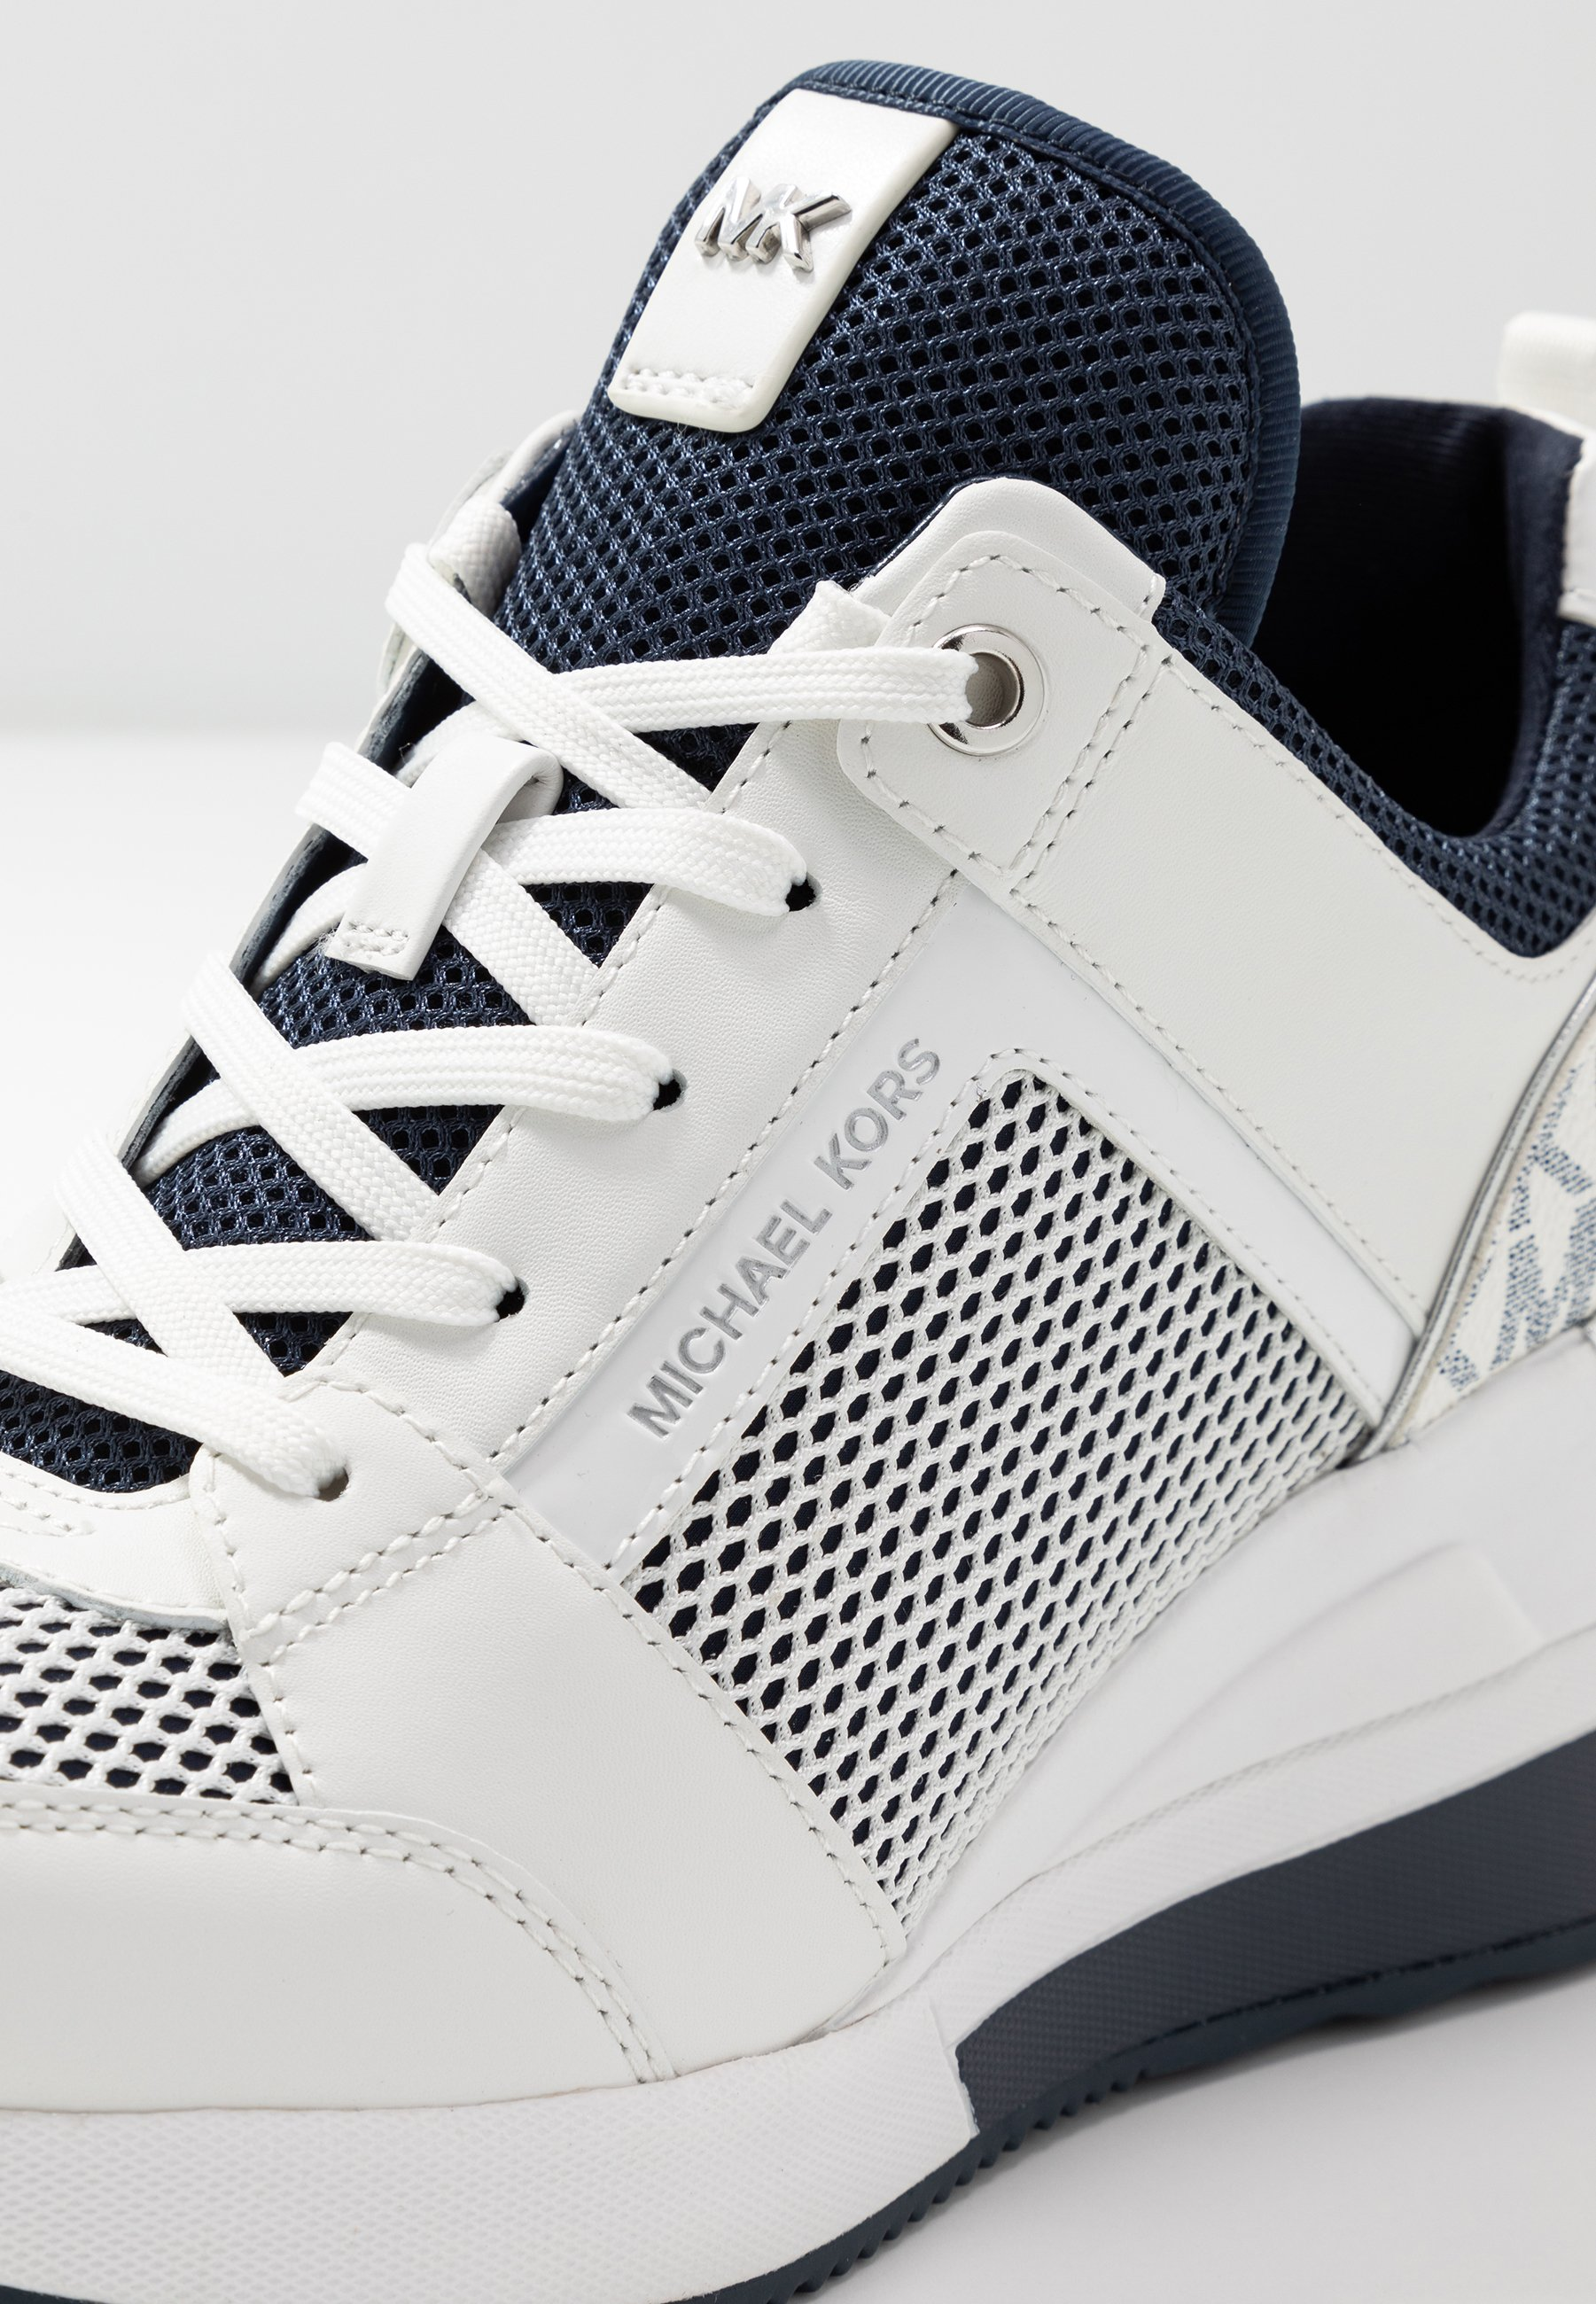 Michael Kors Exclusive Georgie Trainer - Joggesko White/navy